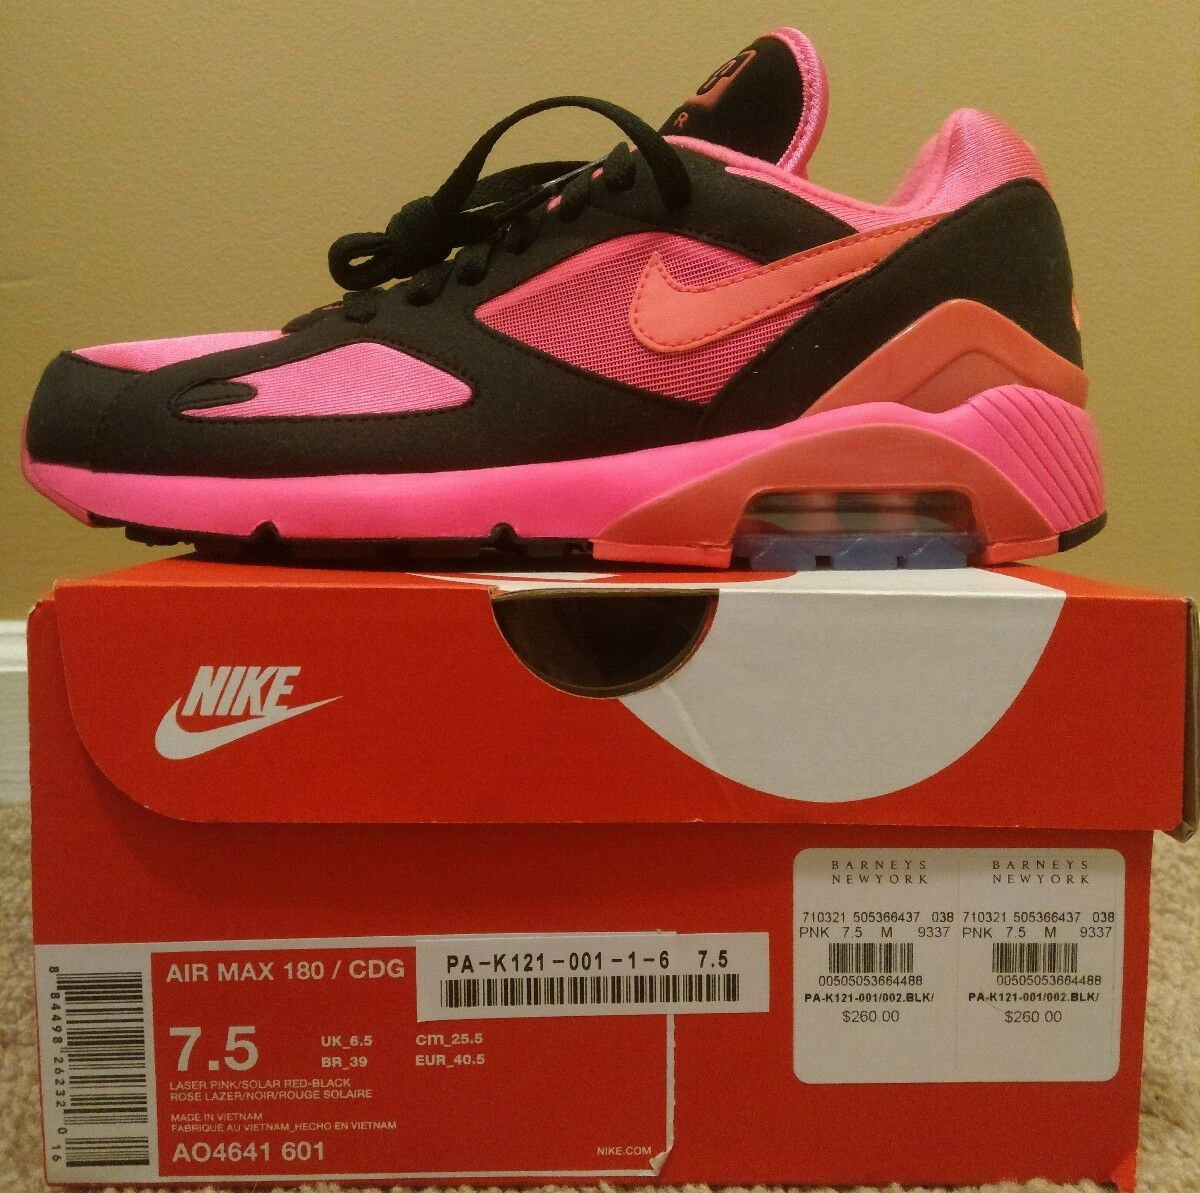 Nike Air Max 180 CDG  Comme des Garcons  US 7.5 AO4641 601 Black Pink Solar Red